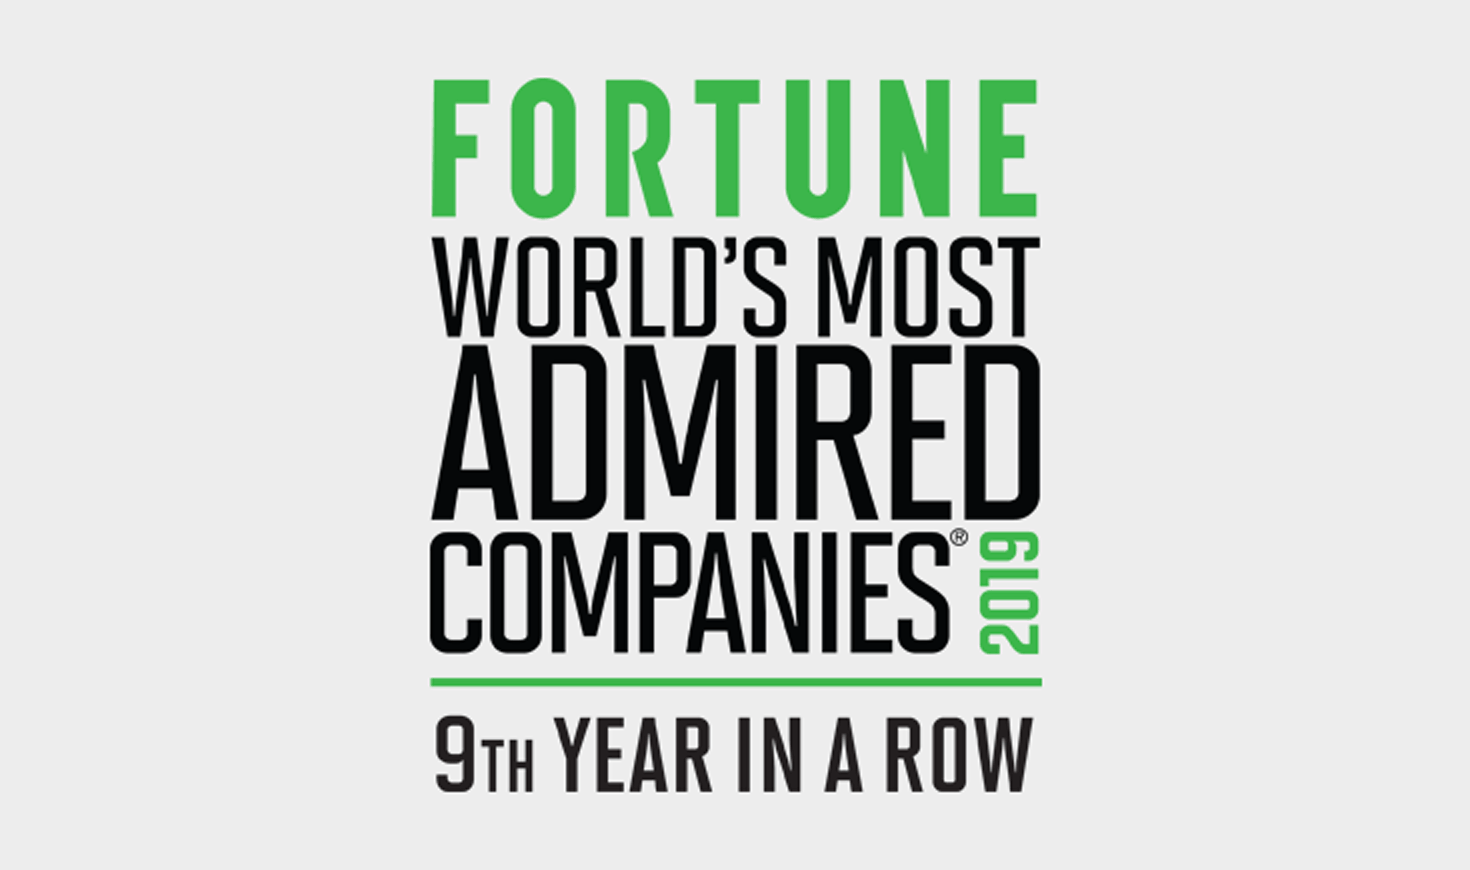 Fortune Worlds most admired companies 2019 -- 9th year in a row